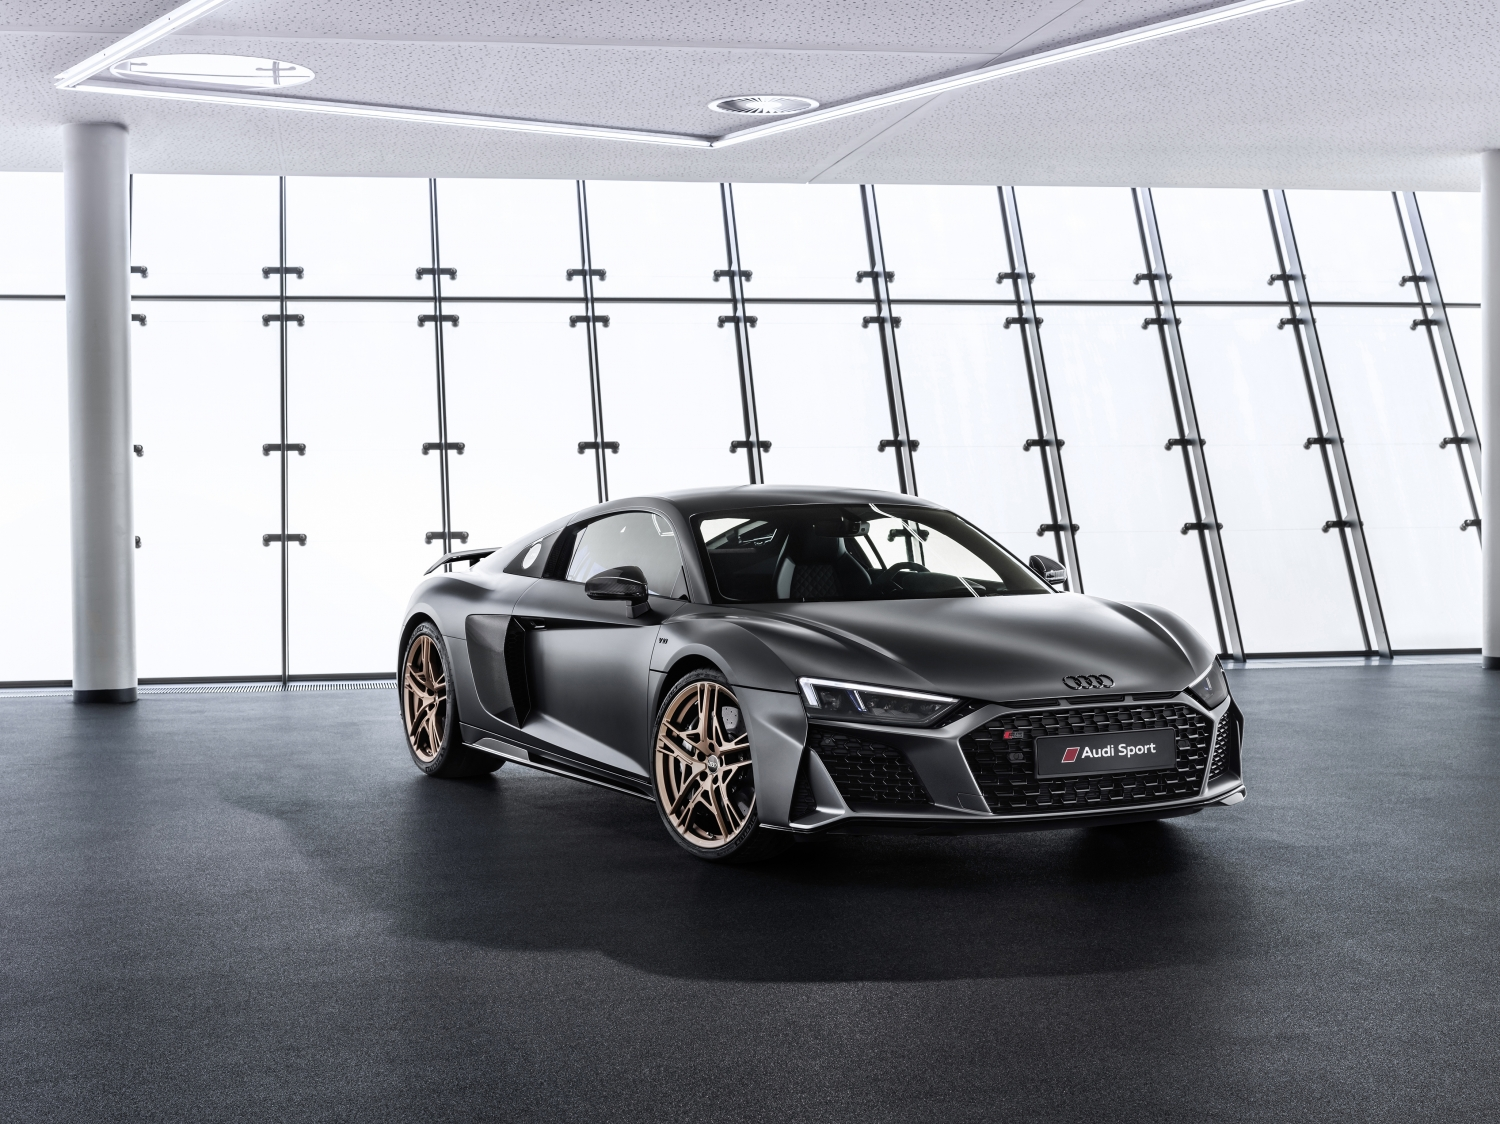 Updated 2020 Audi R8 And Limited Edition R8 V10 Decennium